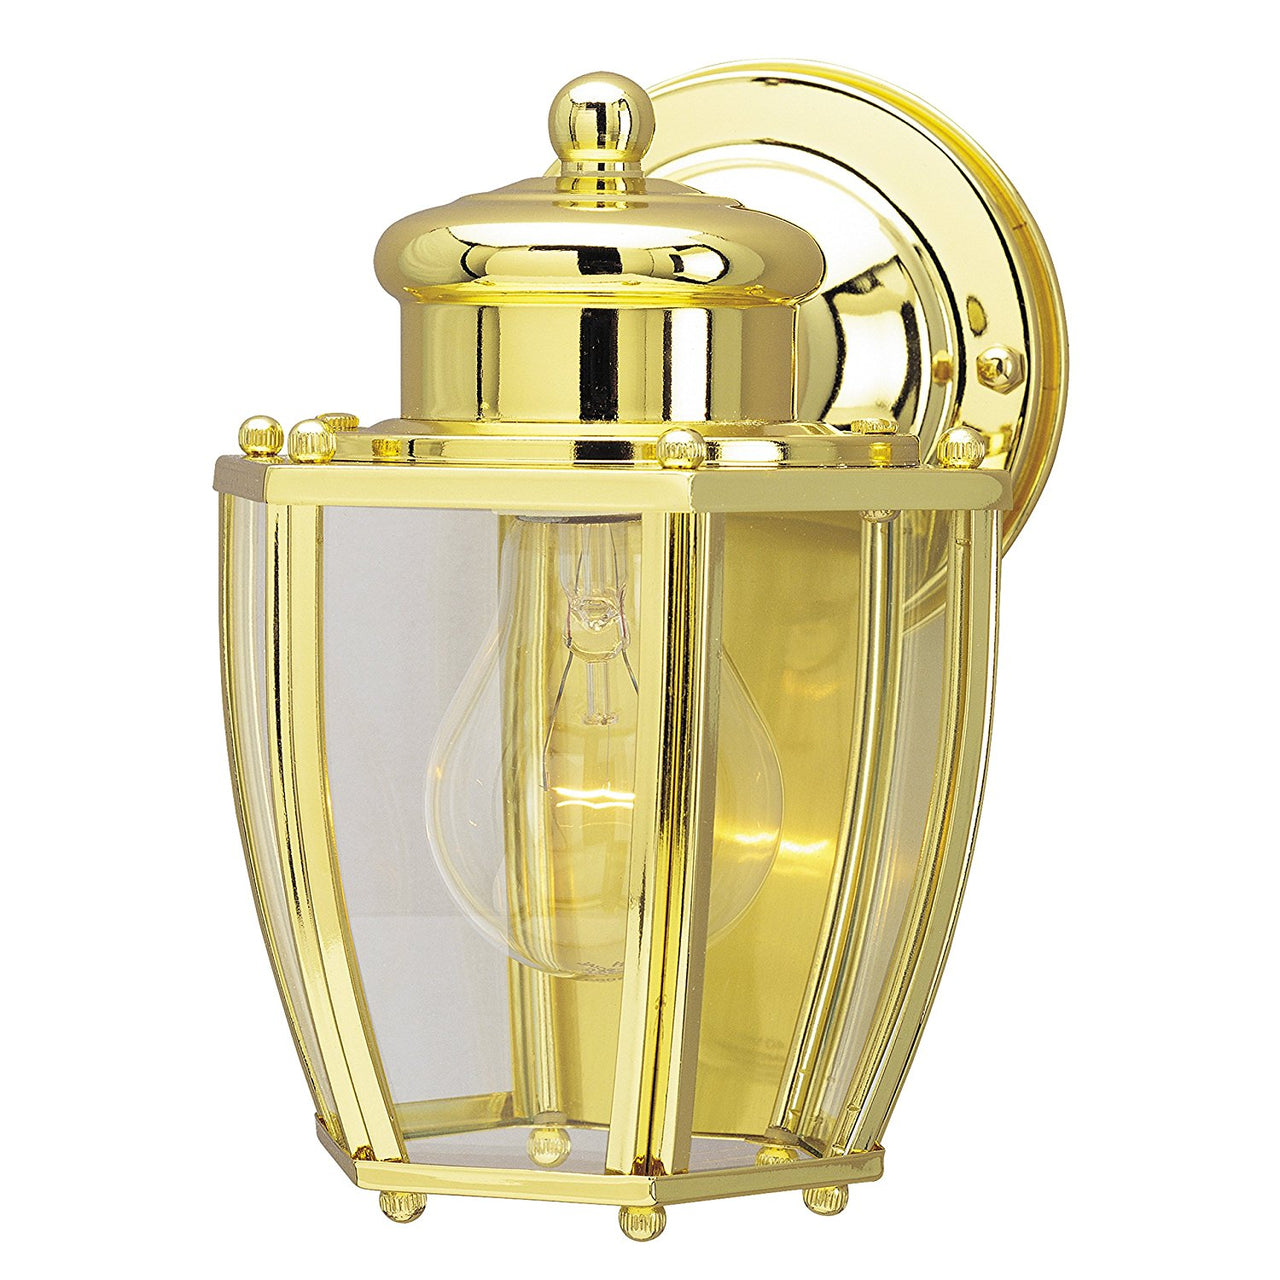 Westinghouse 67963 1-Light Exterior Wall Lantern w/Glass Panels, Polished Brass